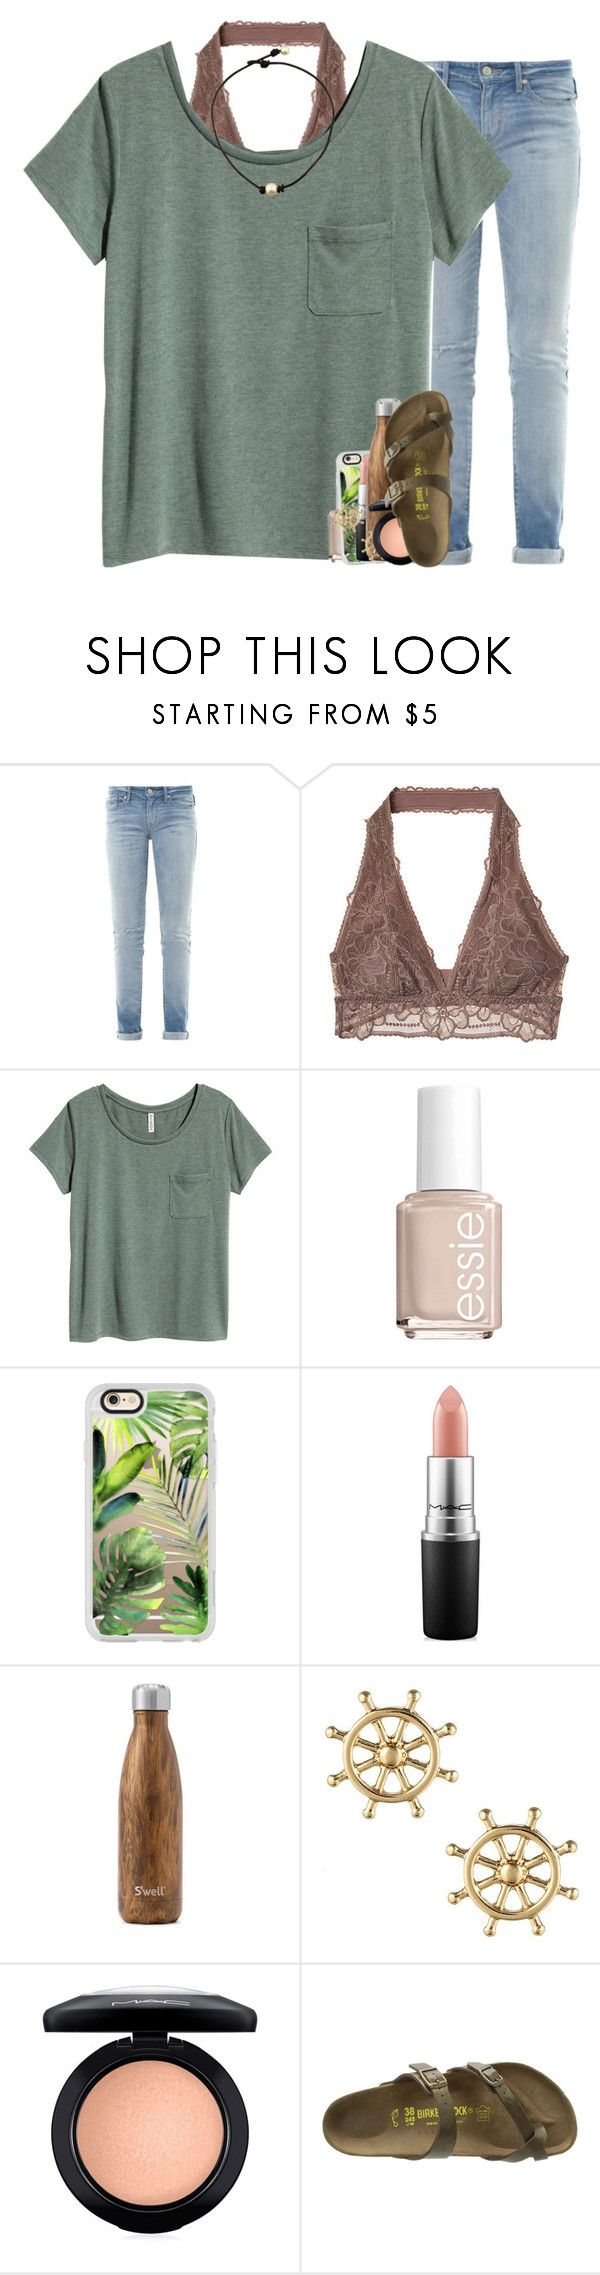 """""""listening to throwback one direction songs """" by madelinelurene ❤ liked on Polyvore featuring Marc by Marc Jacobs, Essie, Casetify, MAC Cosmetics, West Elm, Sperry and Birkenstock"""